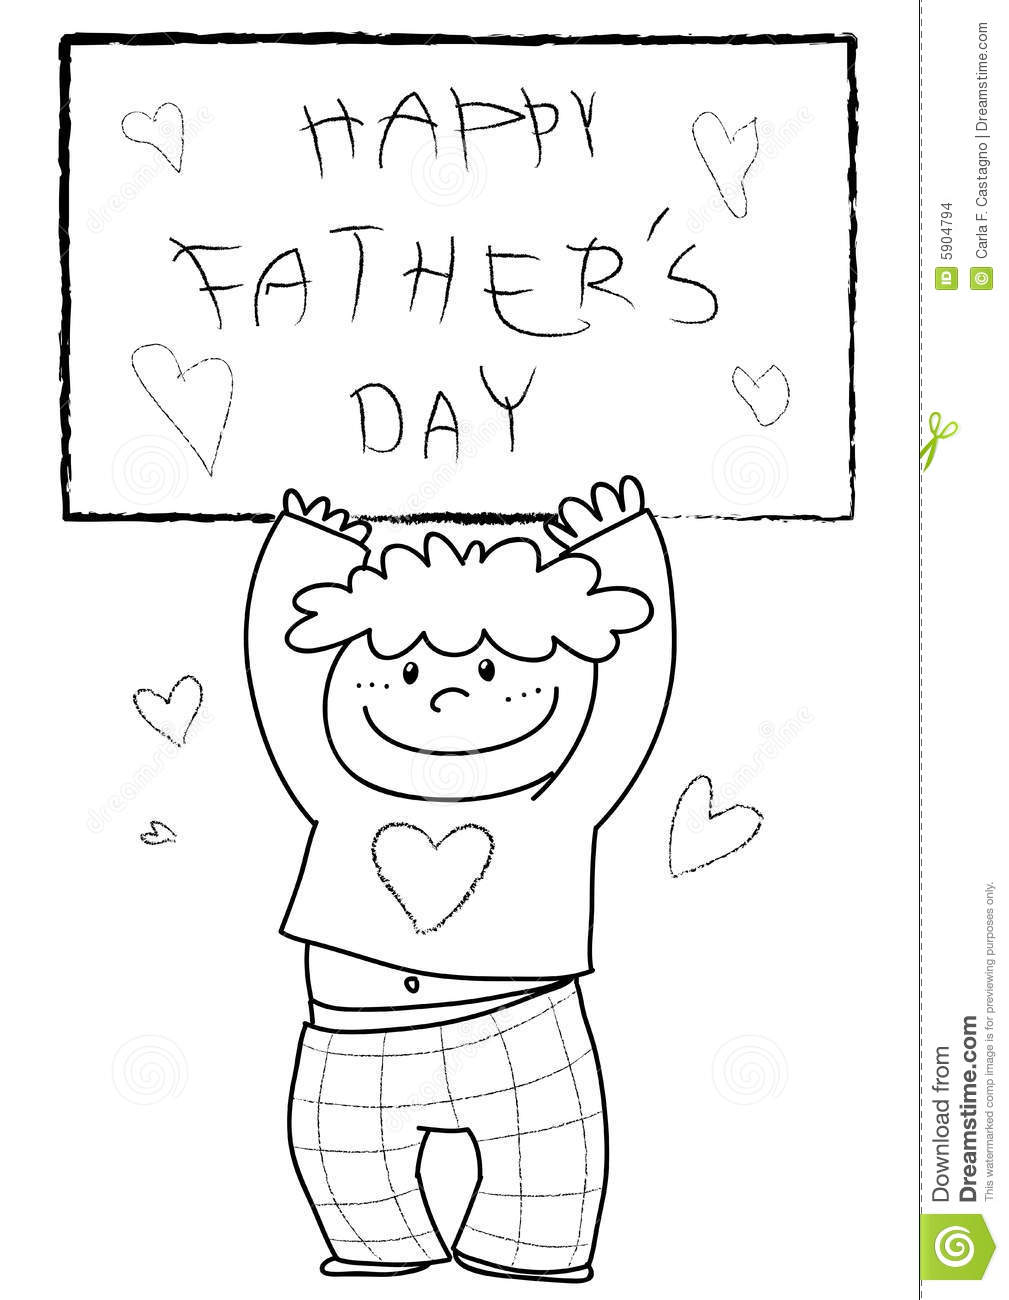 Boy Wishing Happy Father S Day  Black And White Vector Illustration